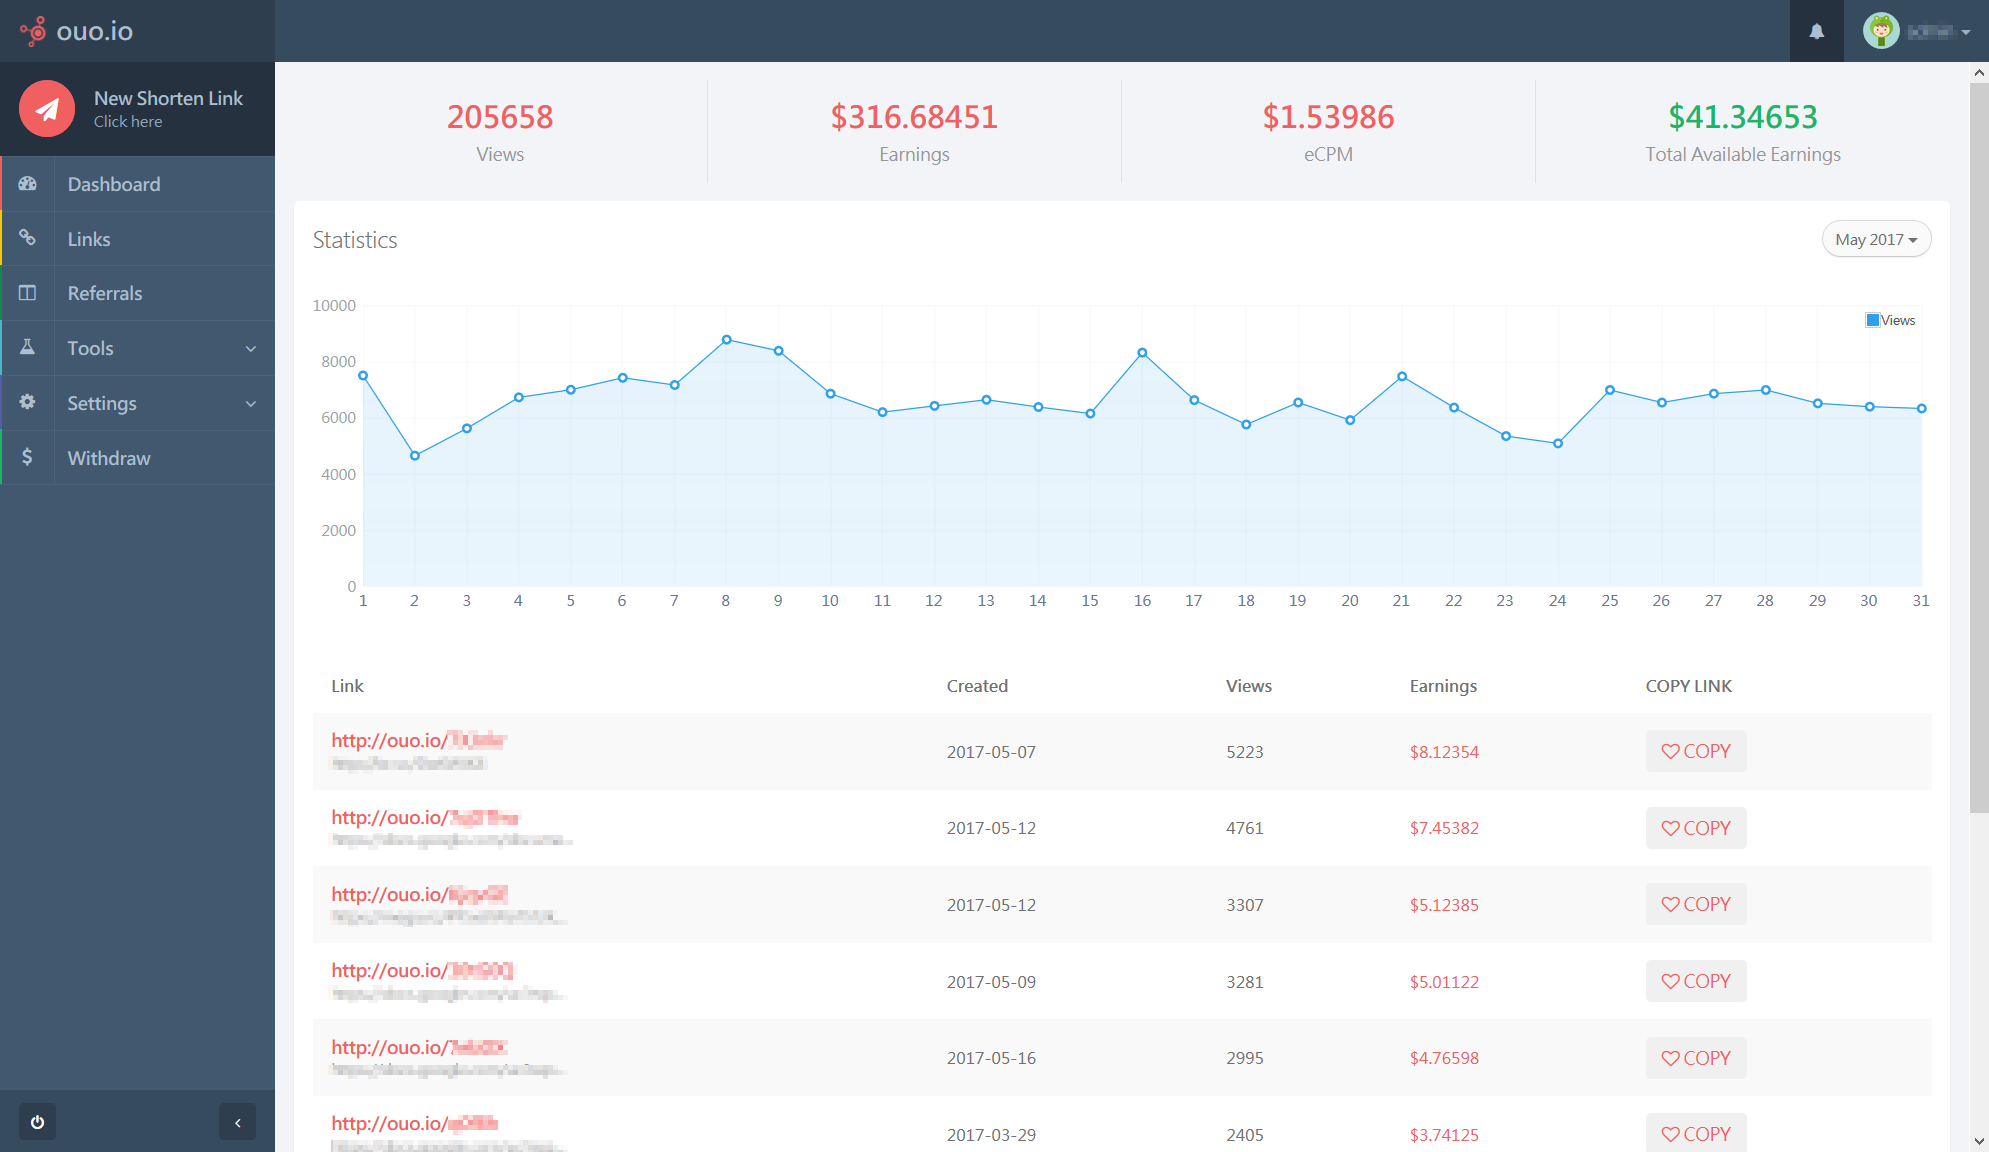 ouo.io dashboard